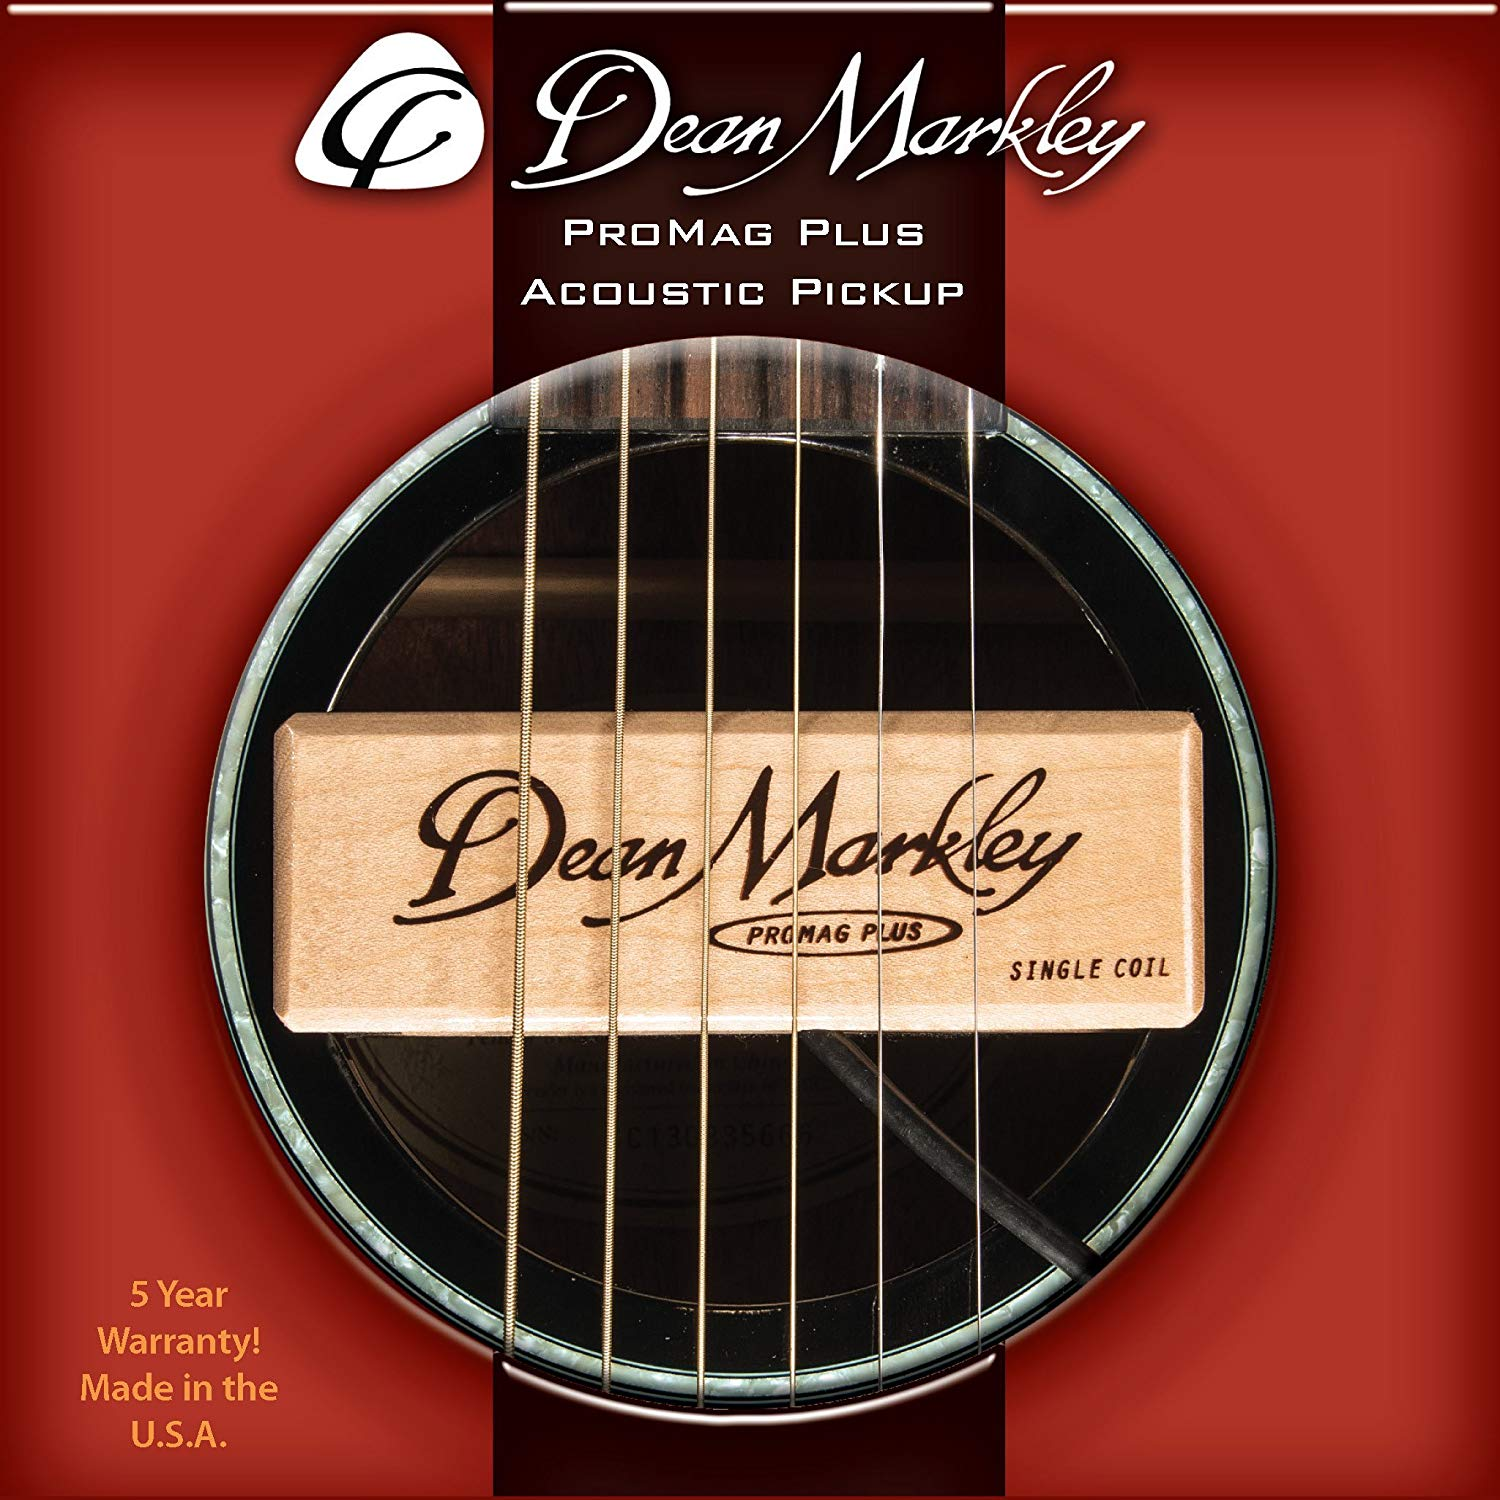 Dean Markley Pro Mag Plus Acoustic Guitar Pickup